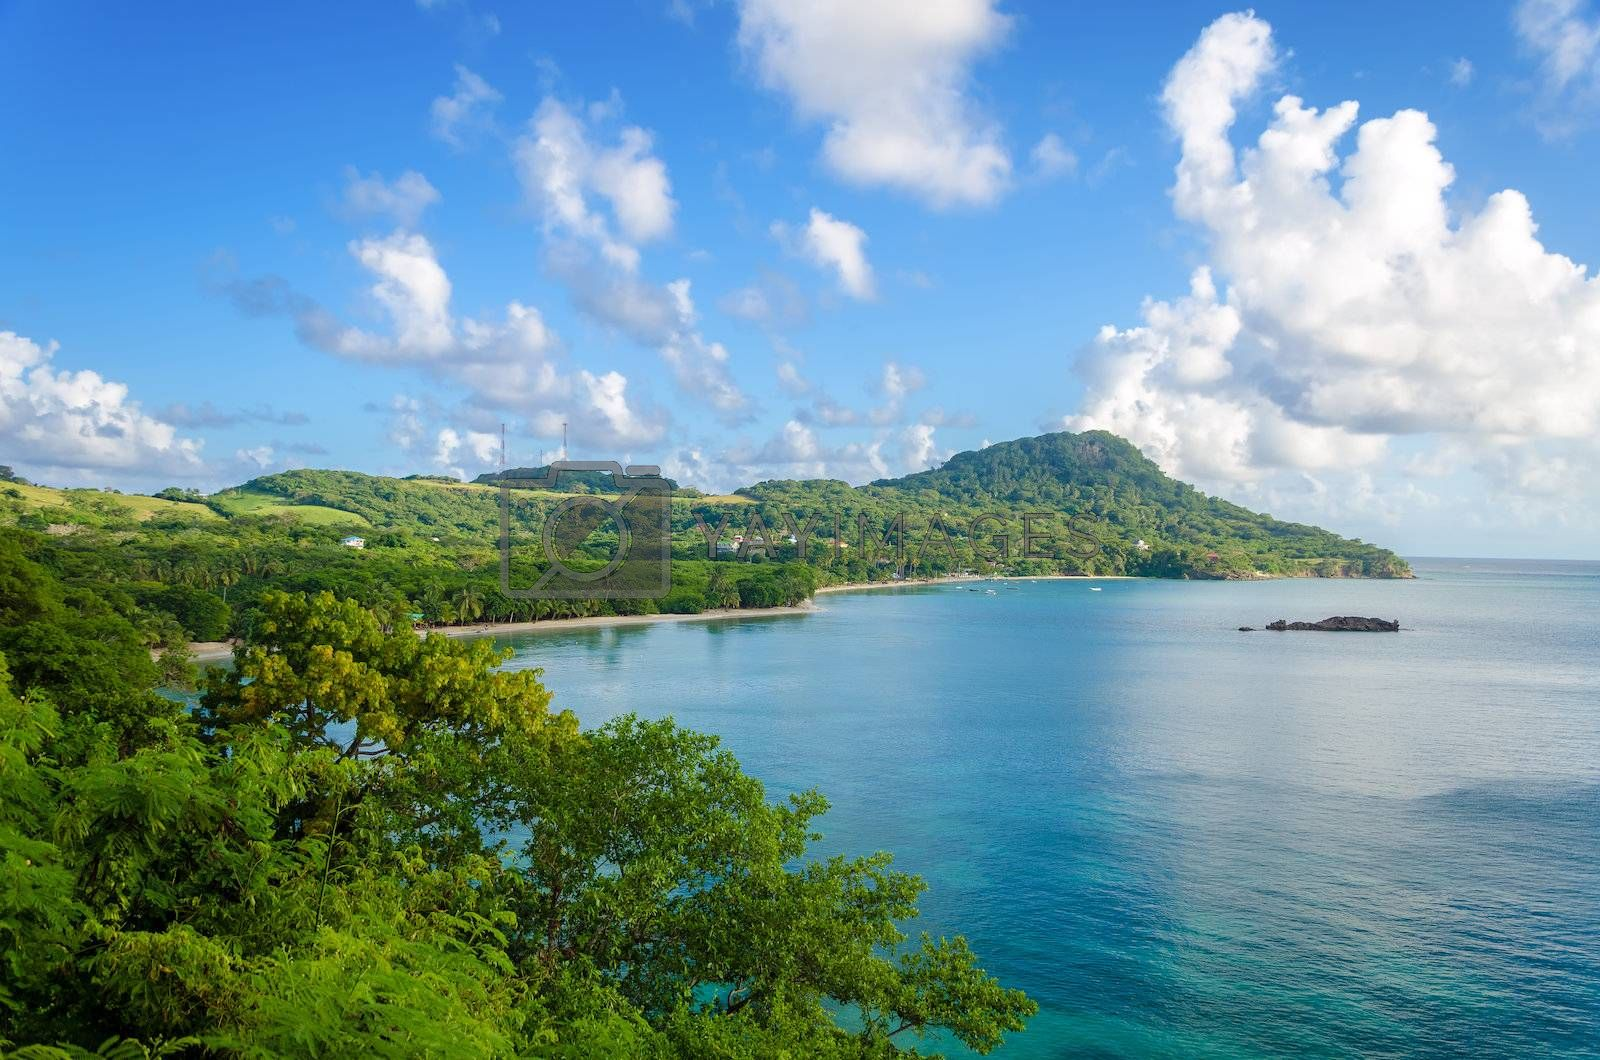 Wide view of Caribbean island of San Andres y Providencia, Colombia